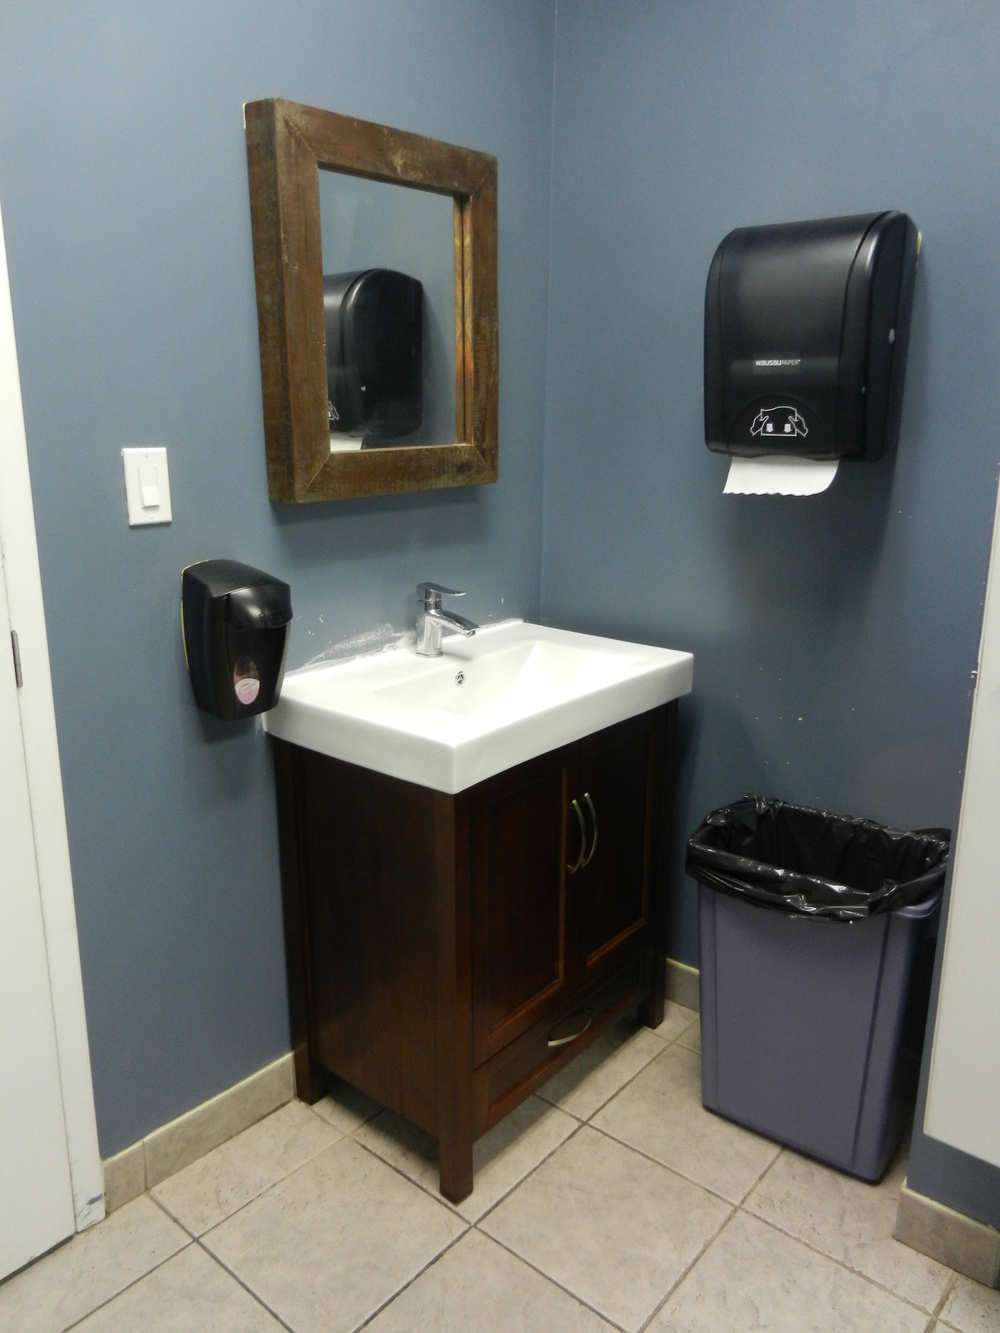 Picture of accessible bathroom (Sink area).